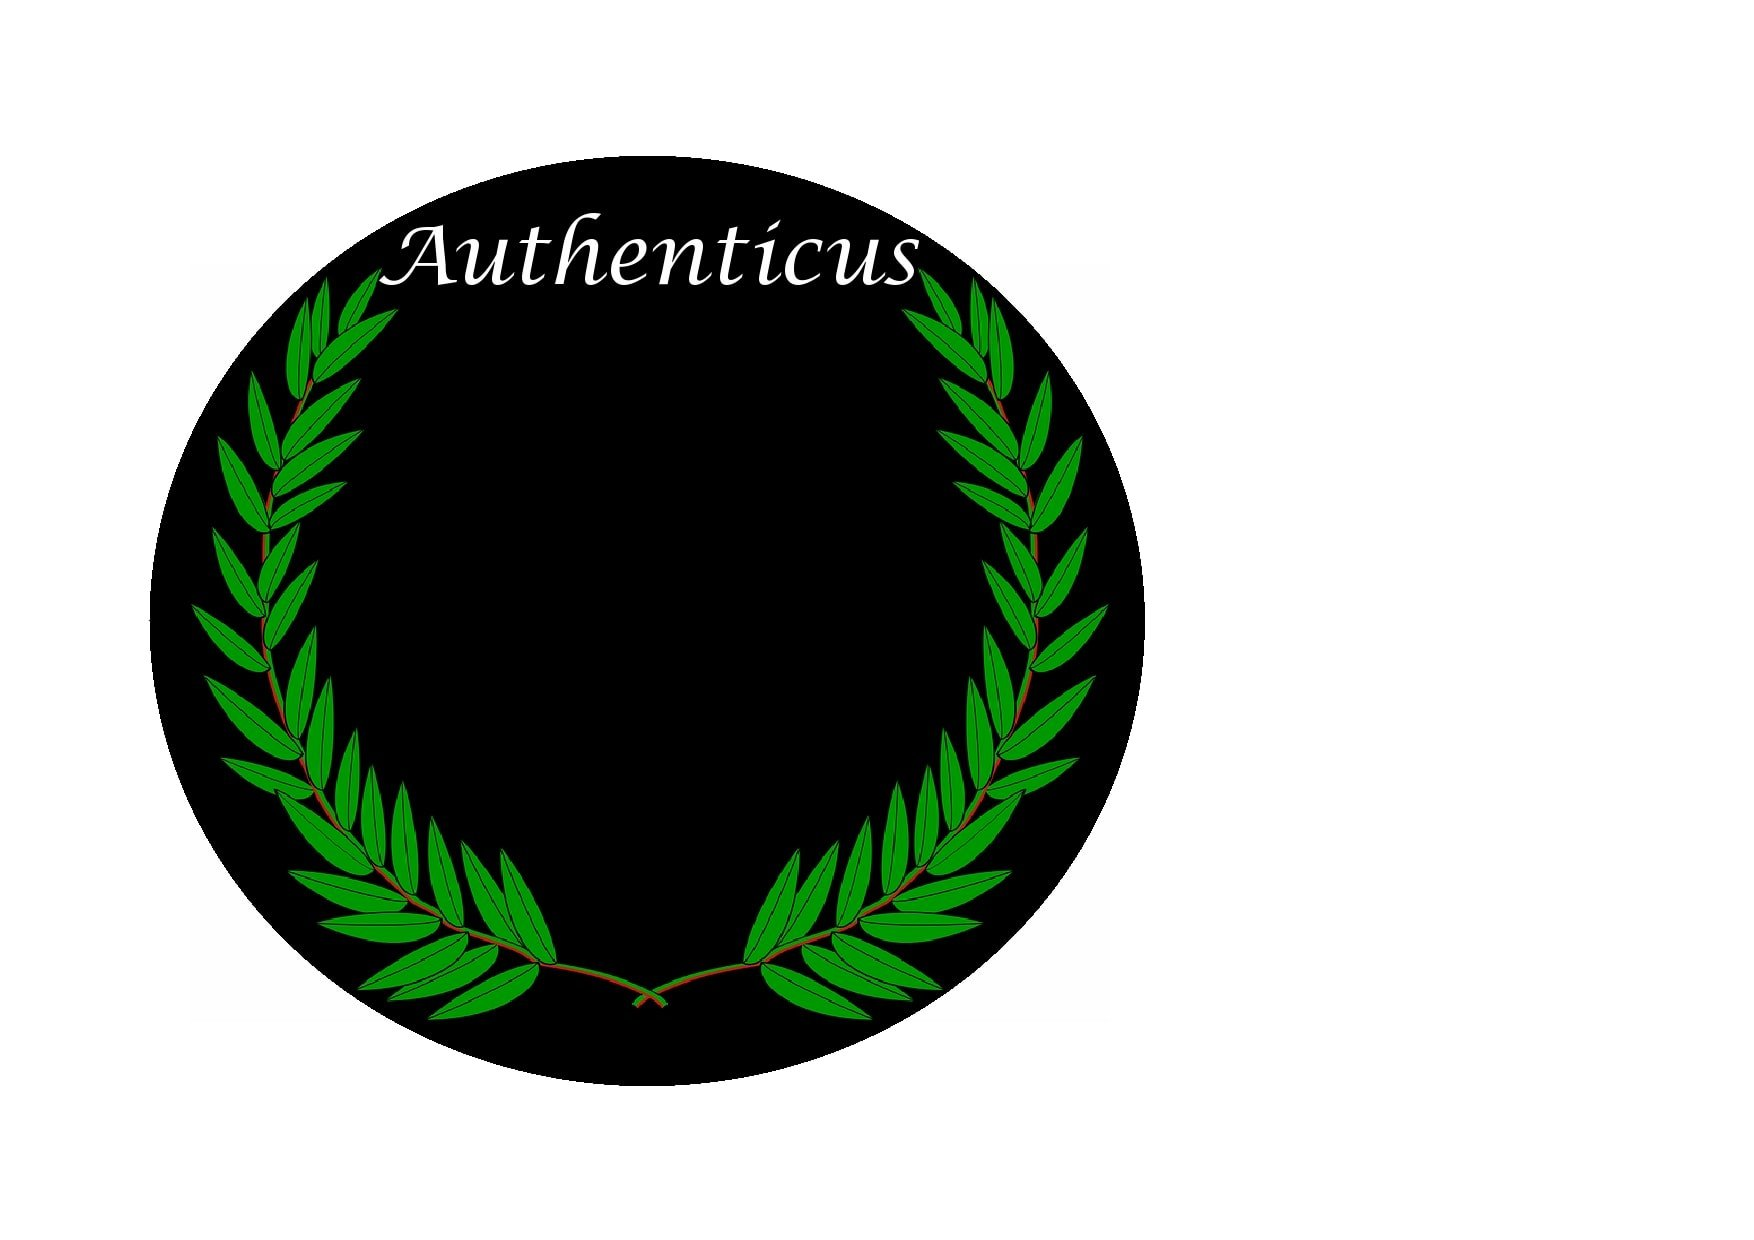 Authenticus